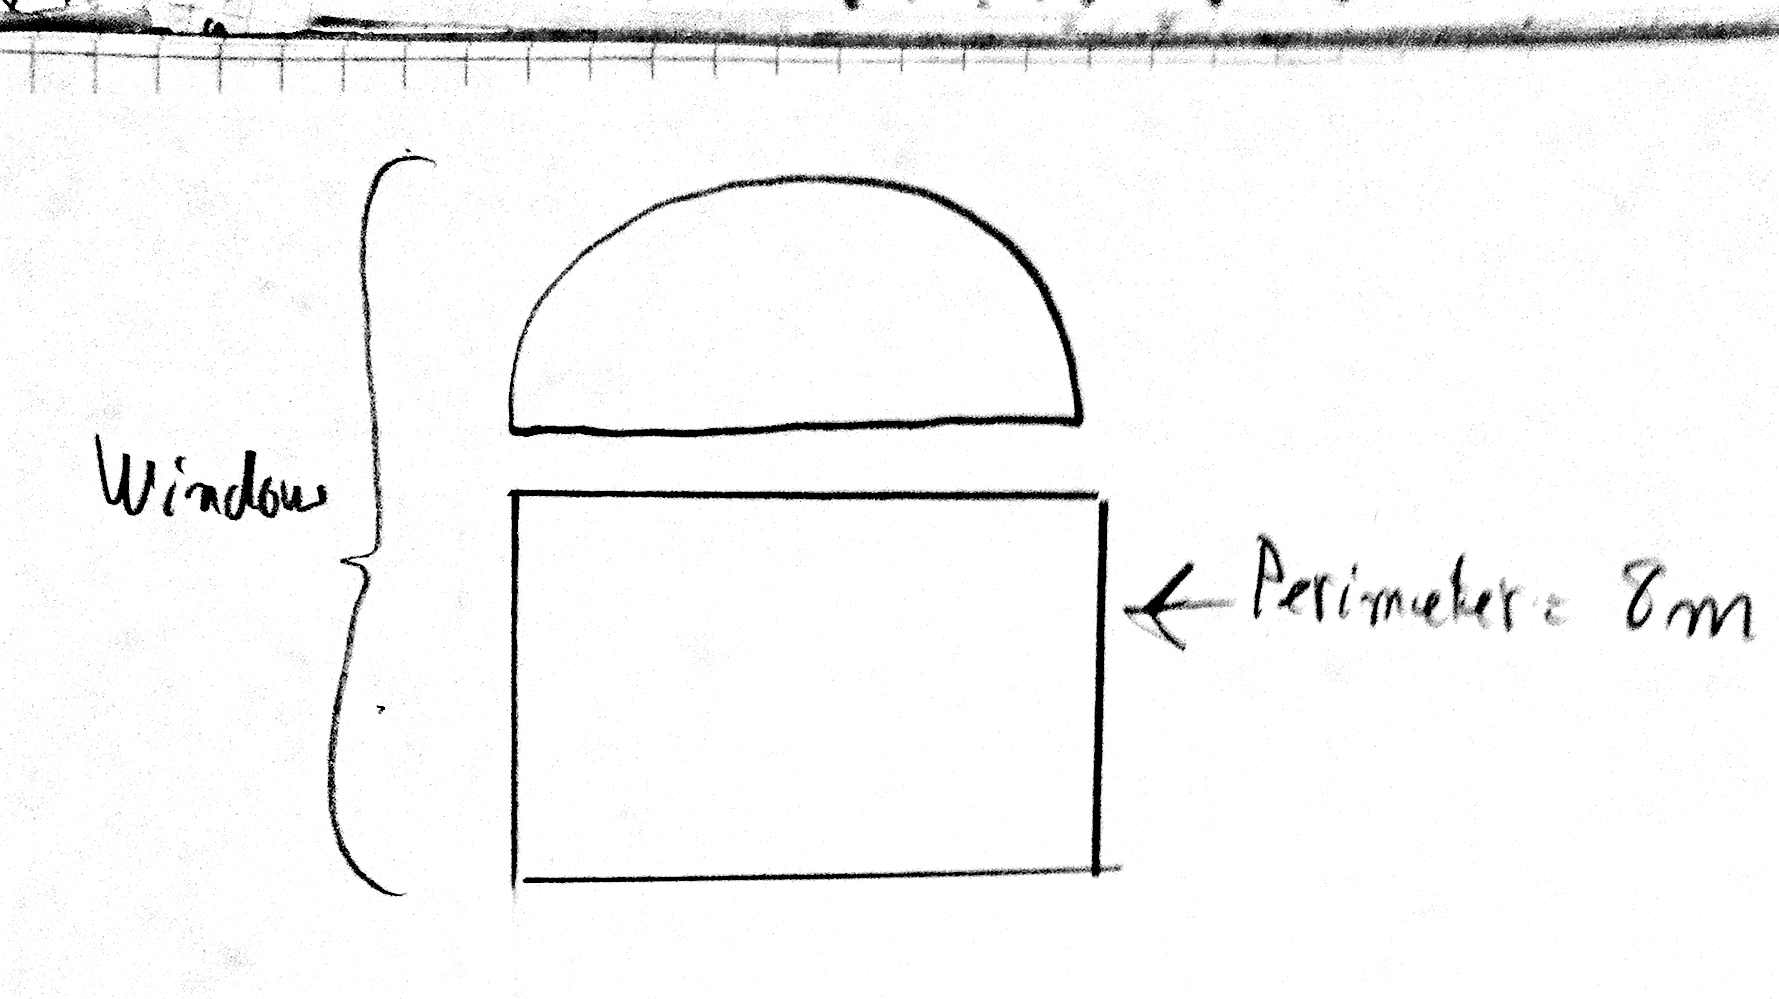 how to get the perimeter of a semicircle